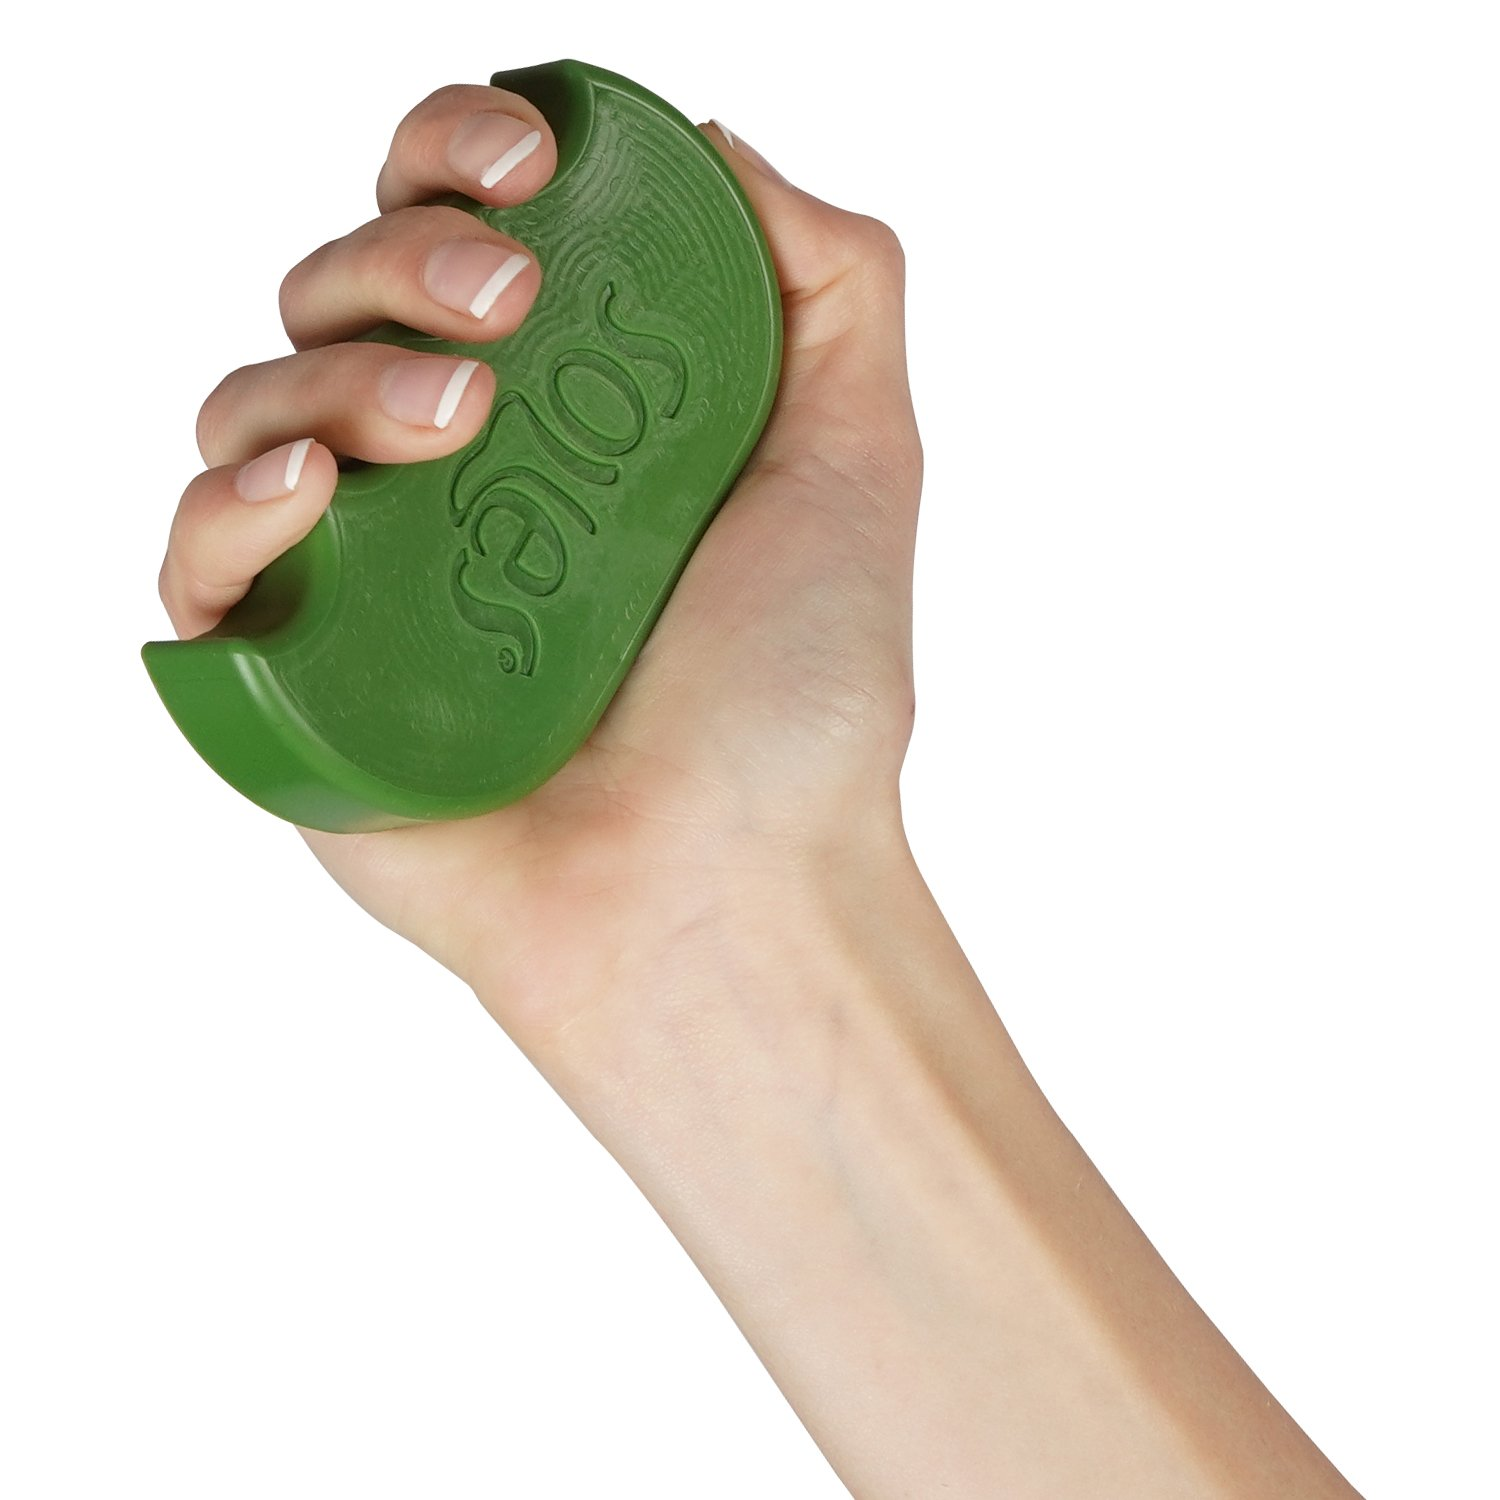 Soles Hand and Finger Strength and Rehabilitation Toy Green (Soft) (SLS521G)